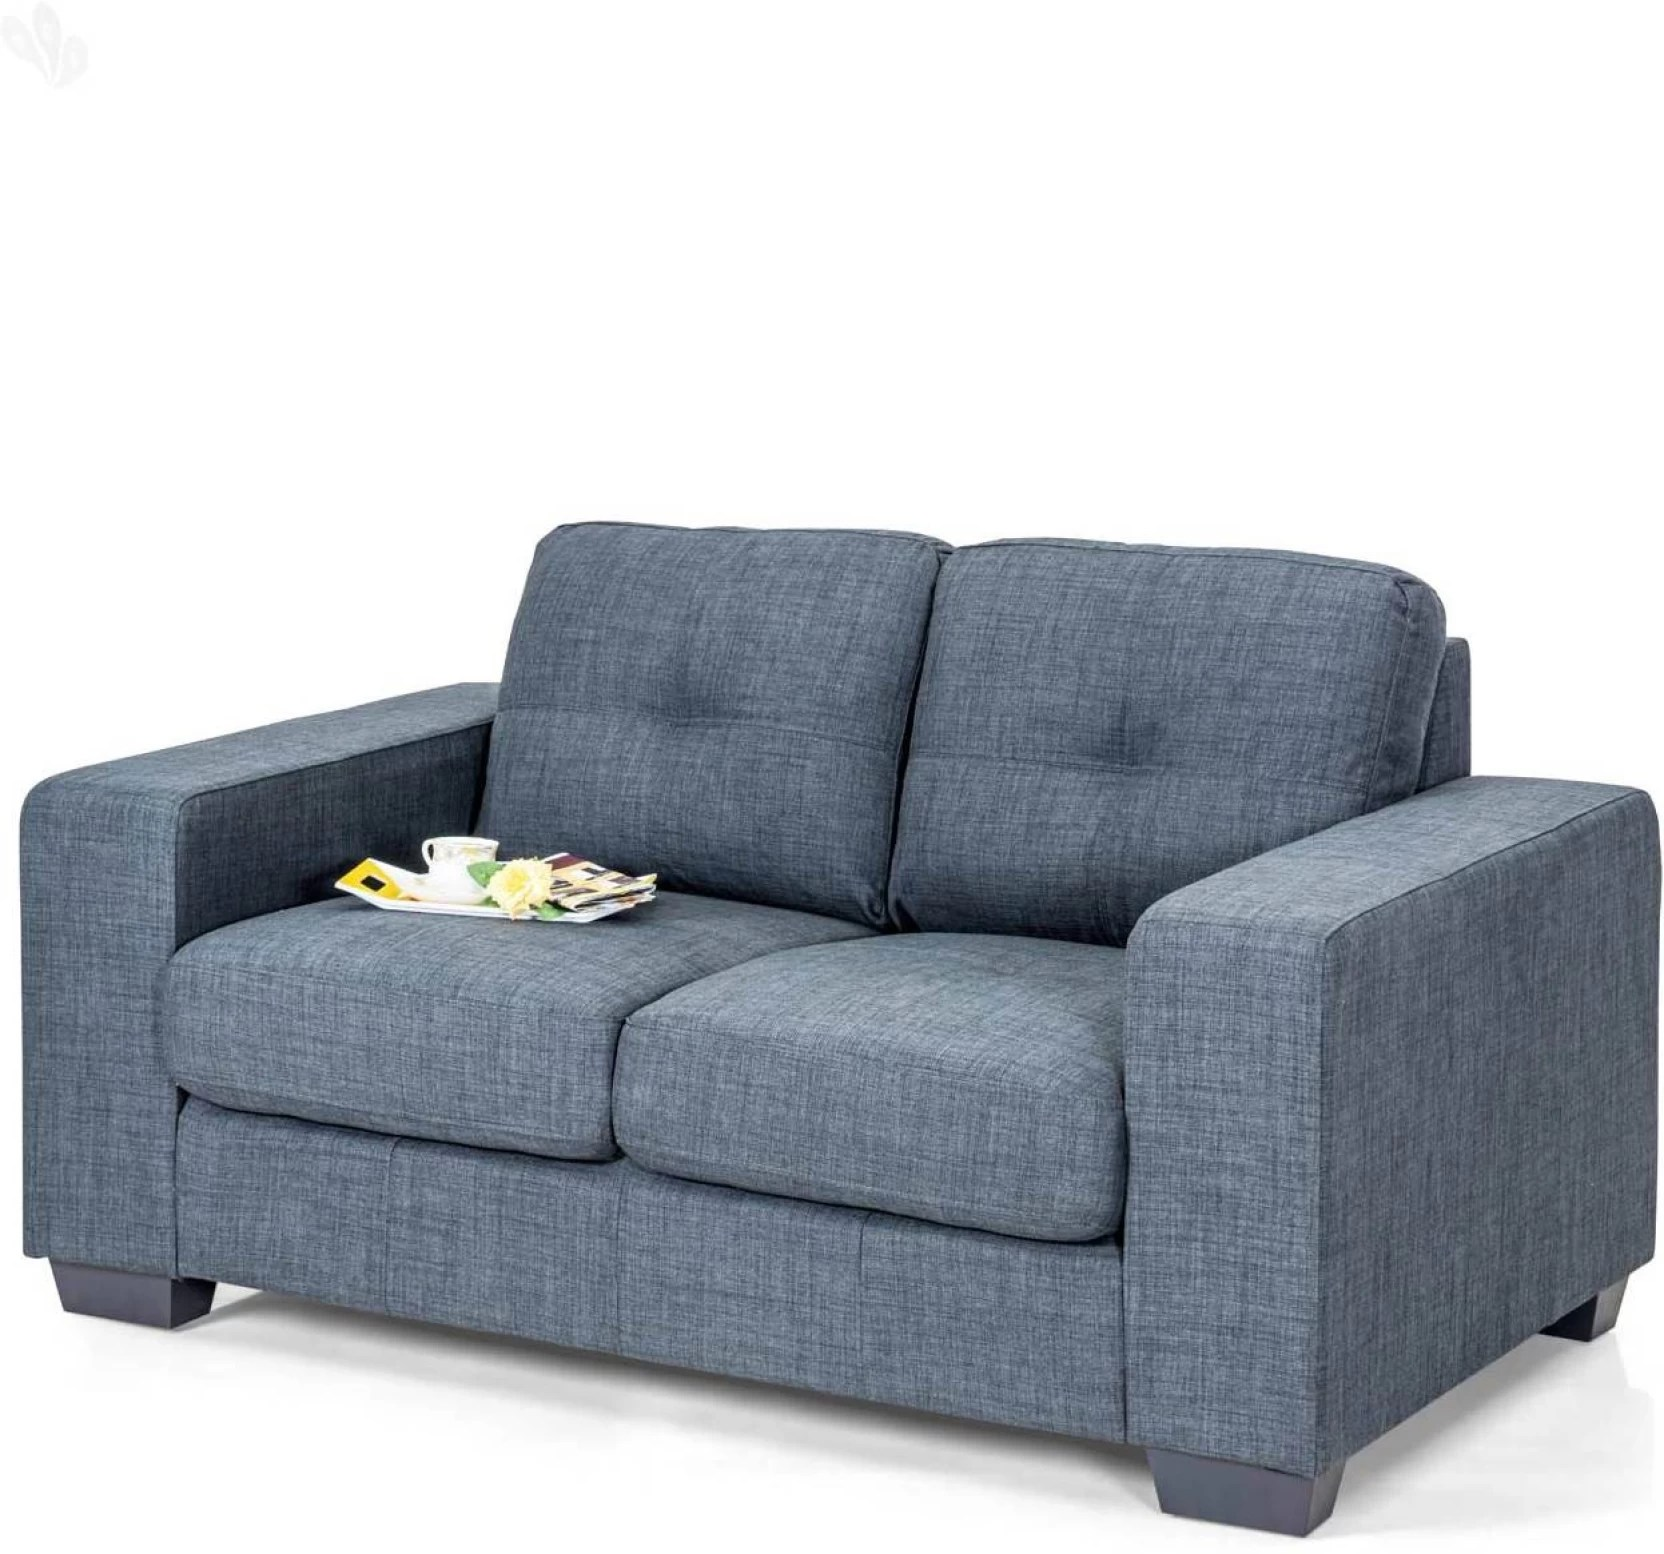 Sofa Berlin Royaloak Berlin Fabric 2 Seater Sofa